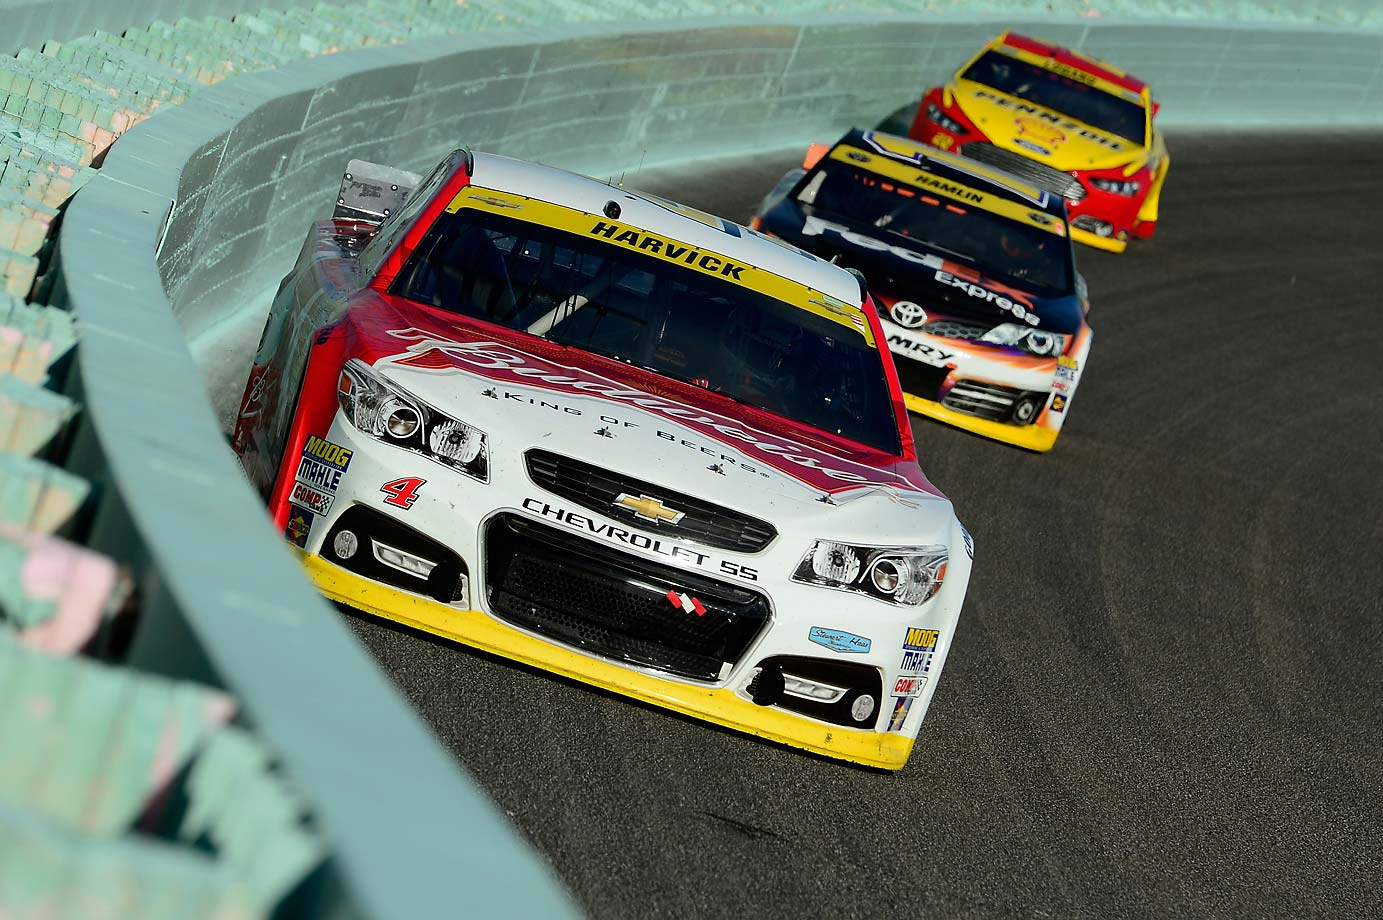 Kevin Harvick leads Denny Hamlin and Joey Logano during the final race of the 2014 NASCAR season.